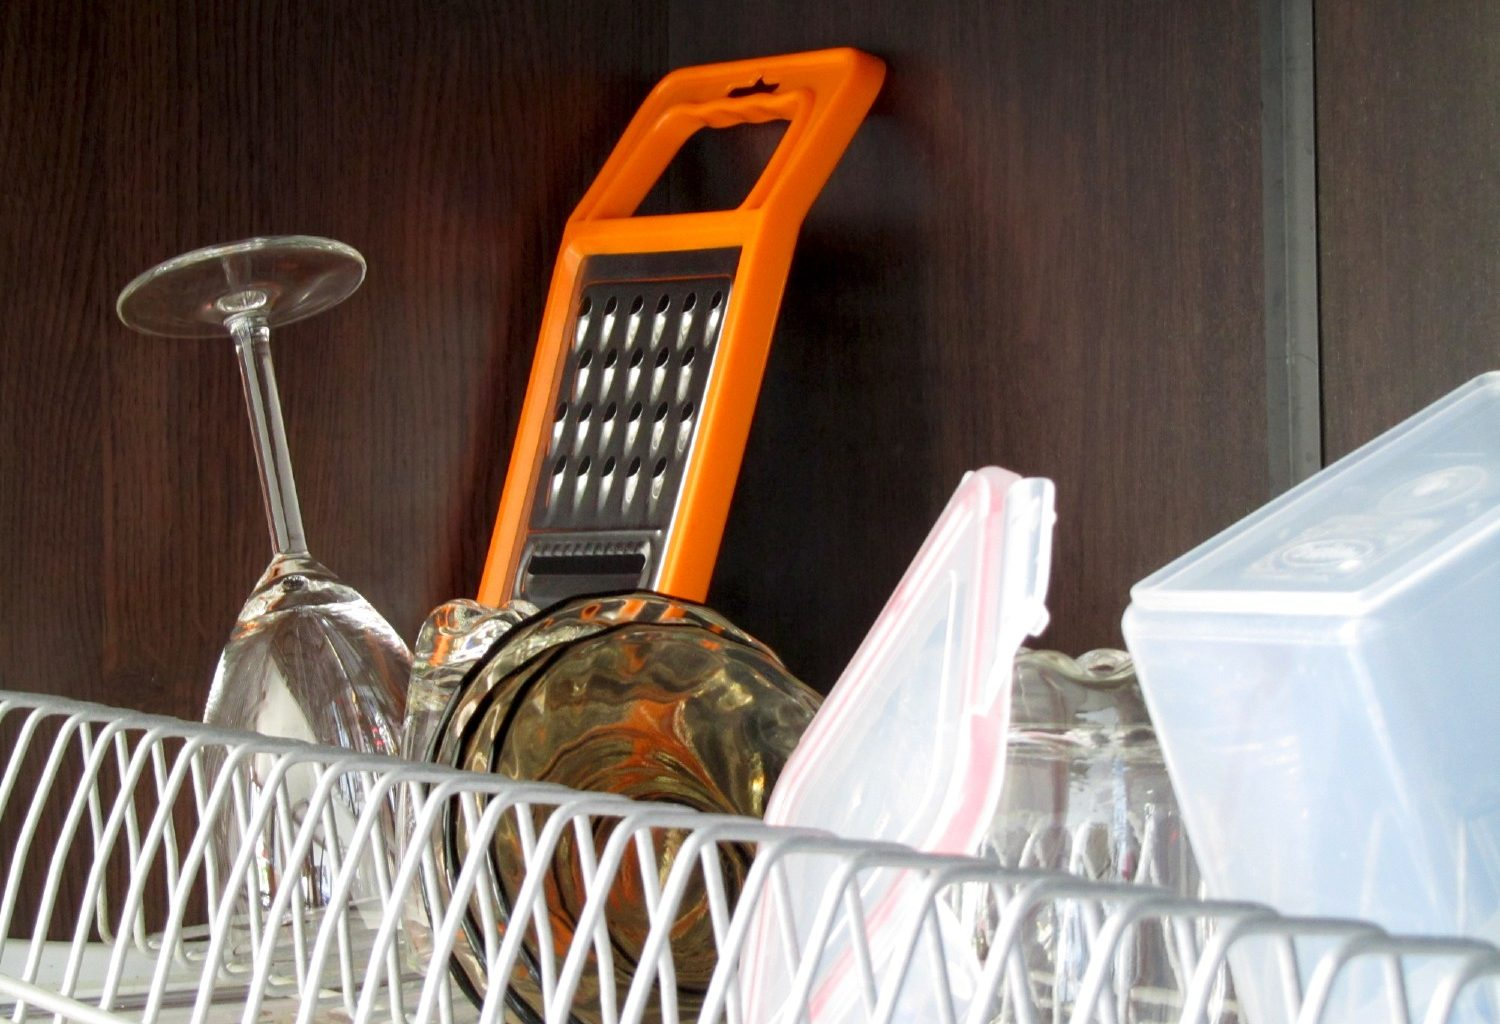 Dishes and cutlery drying on a rack on top of a shelf